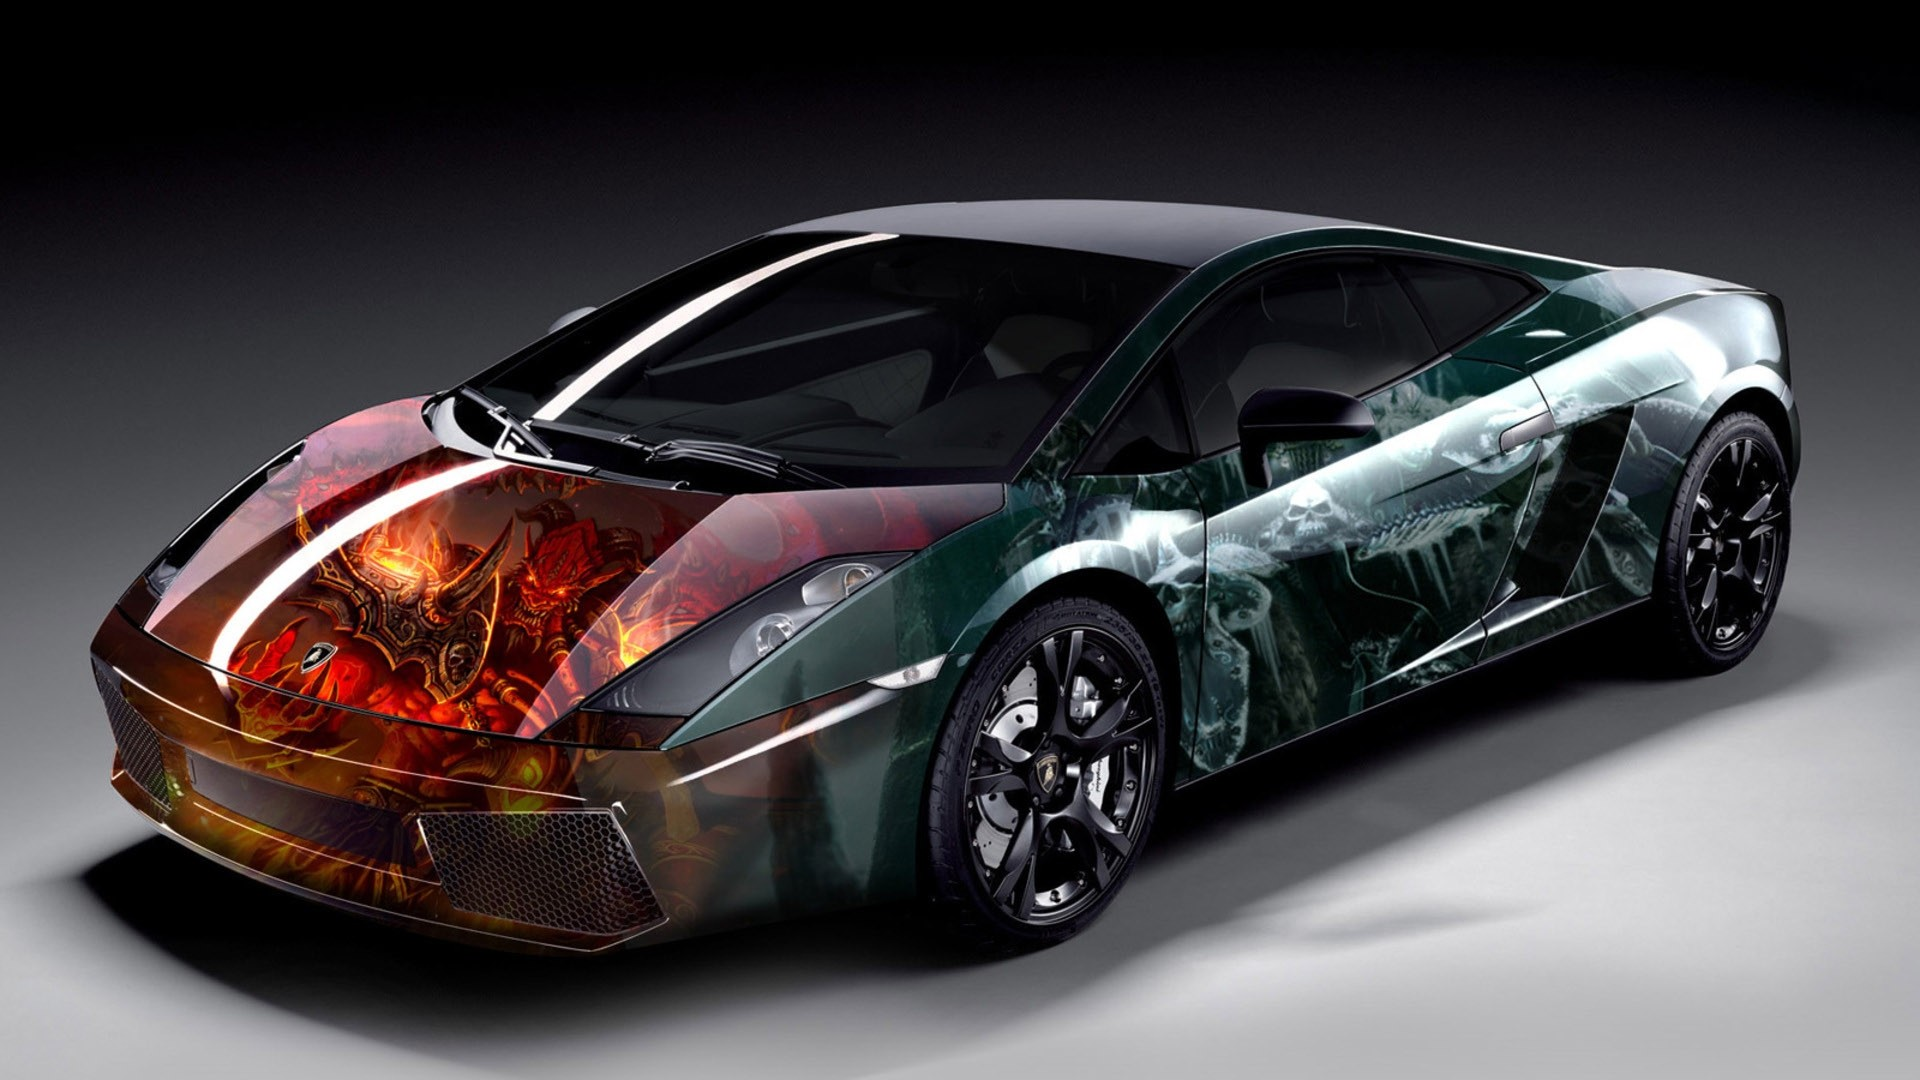 What S The Name Of The Fastest Car In The World